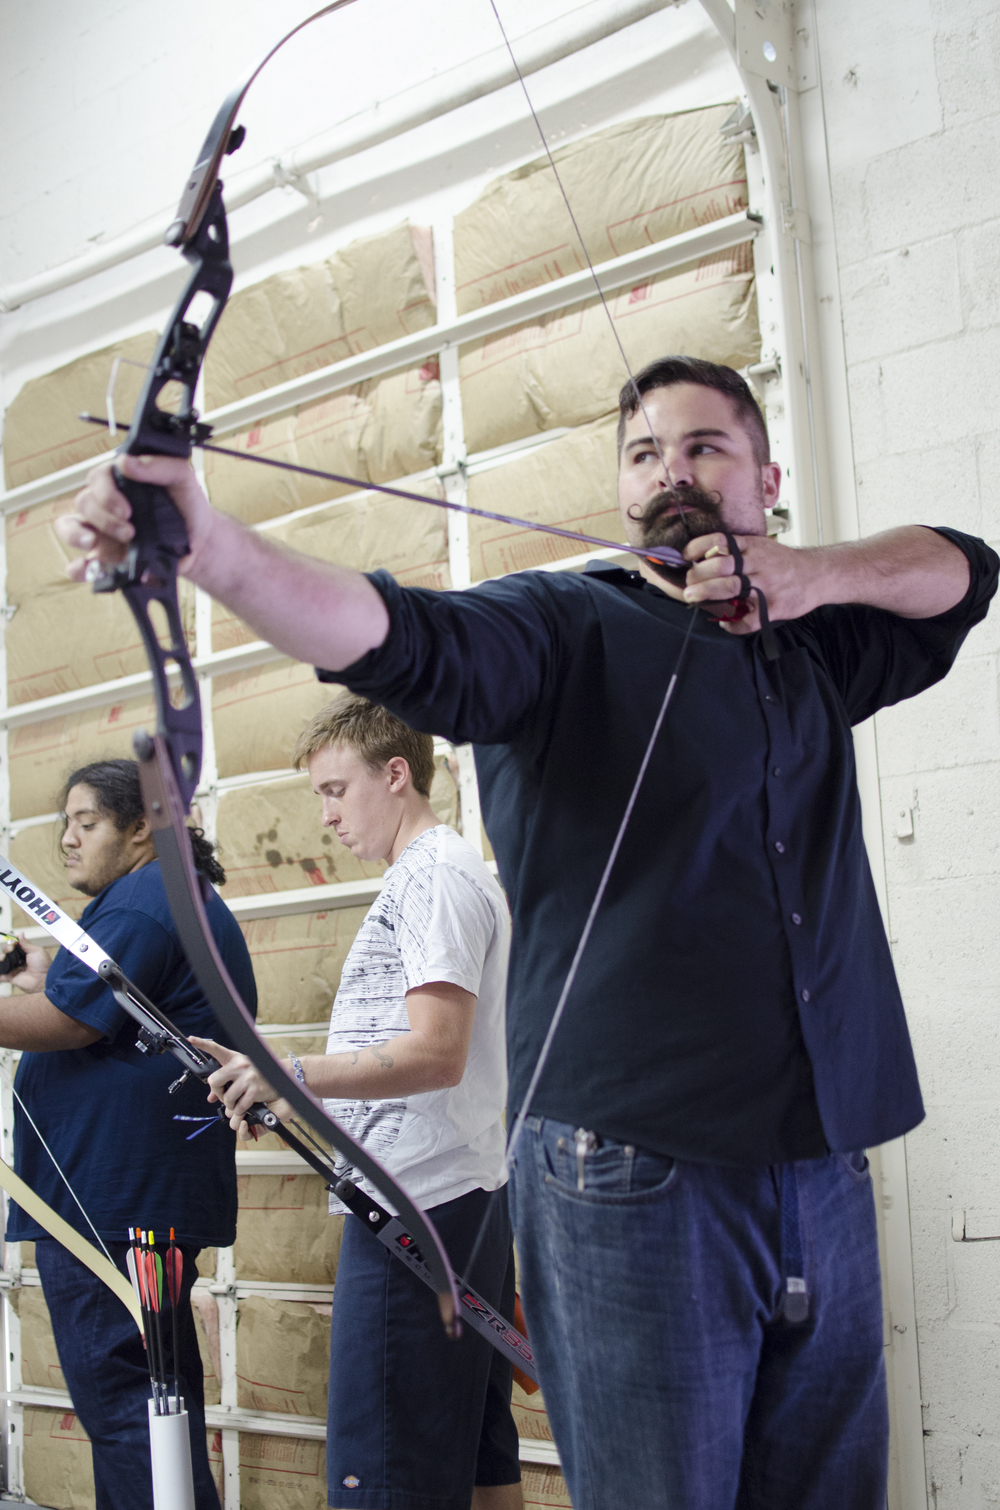 President Will Landis - Majestic Archery Pose